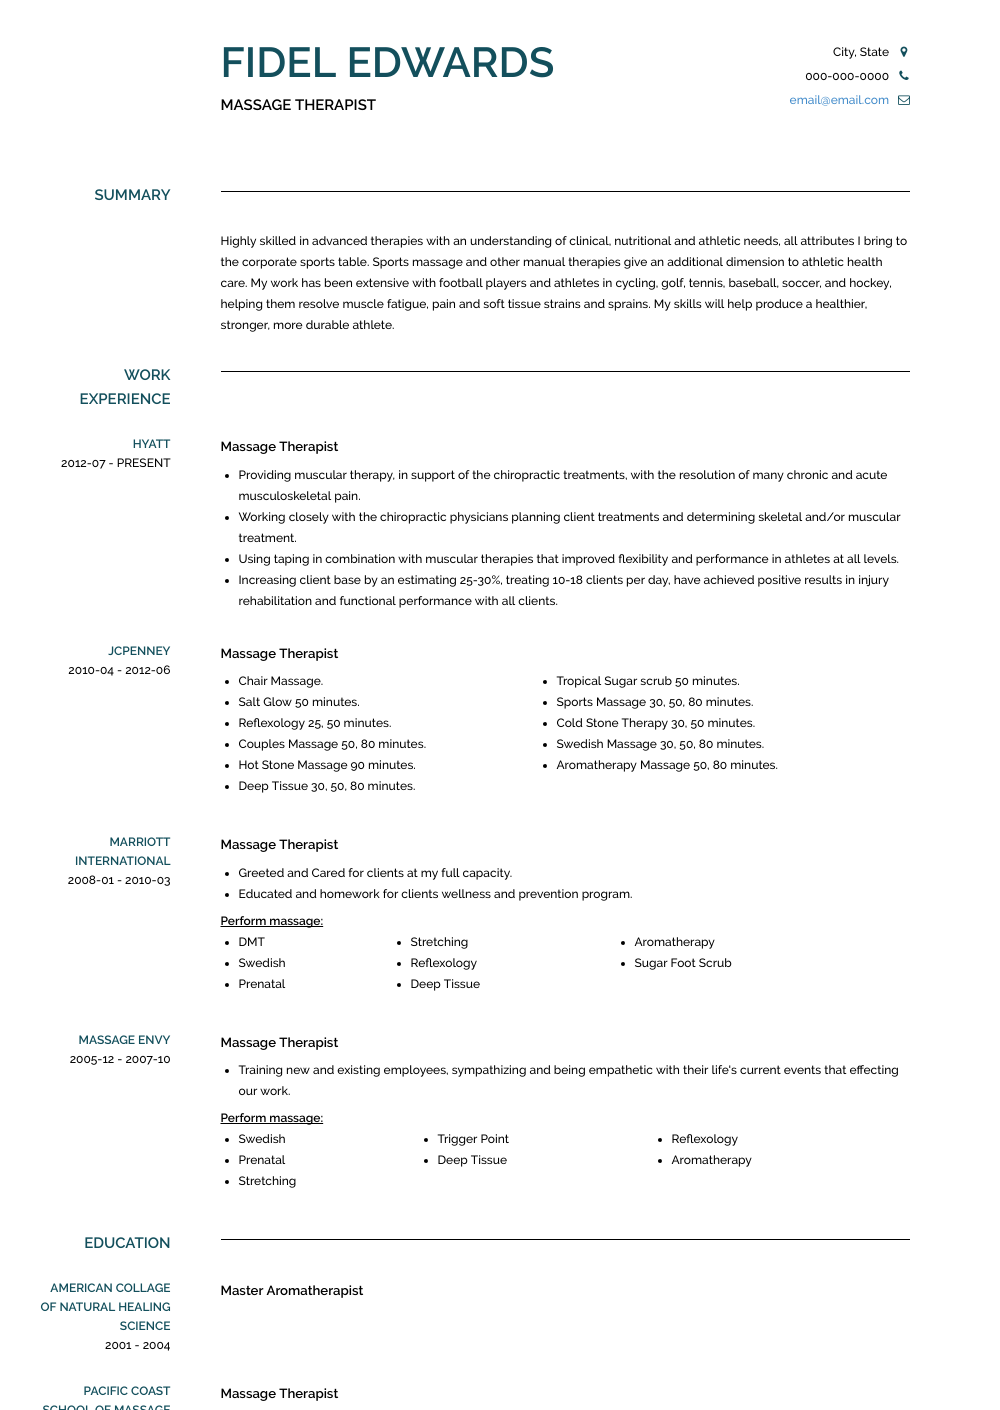 Massage Therapist Resume Sample and Template